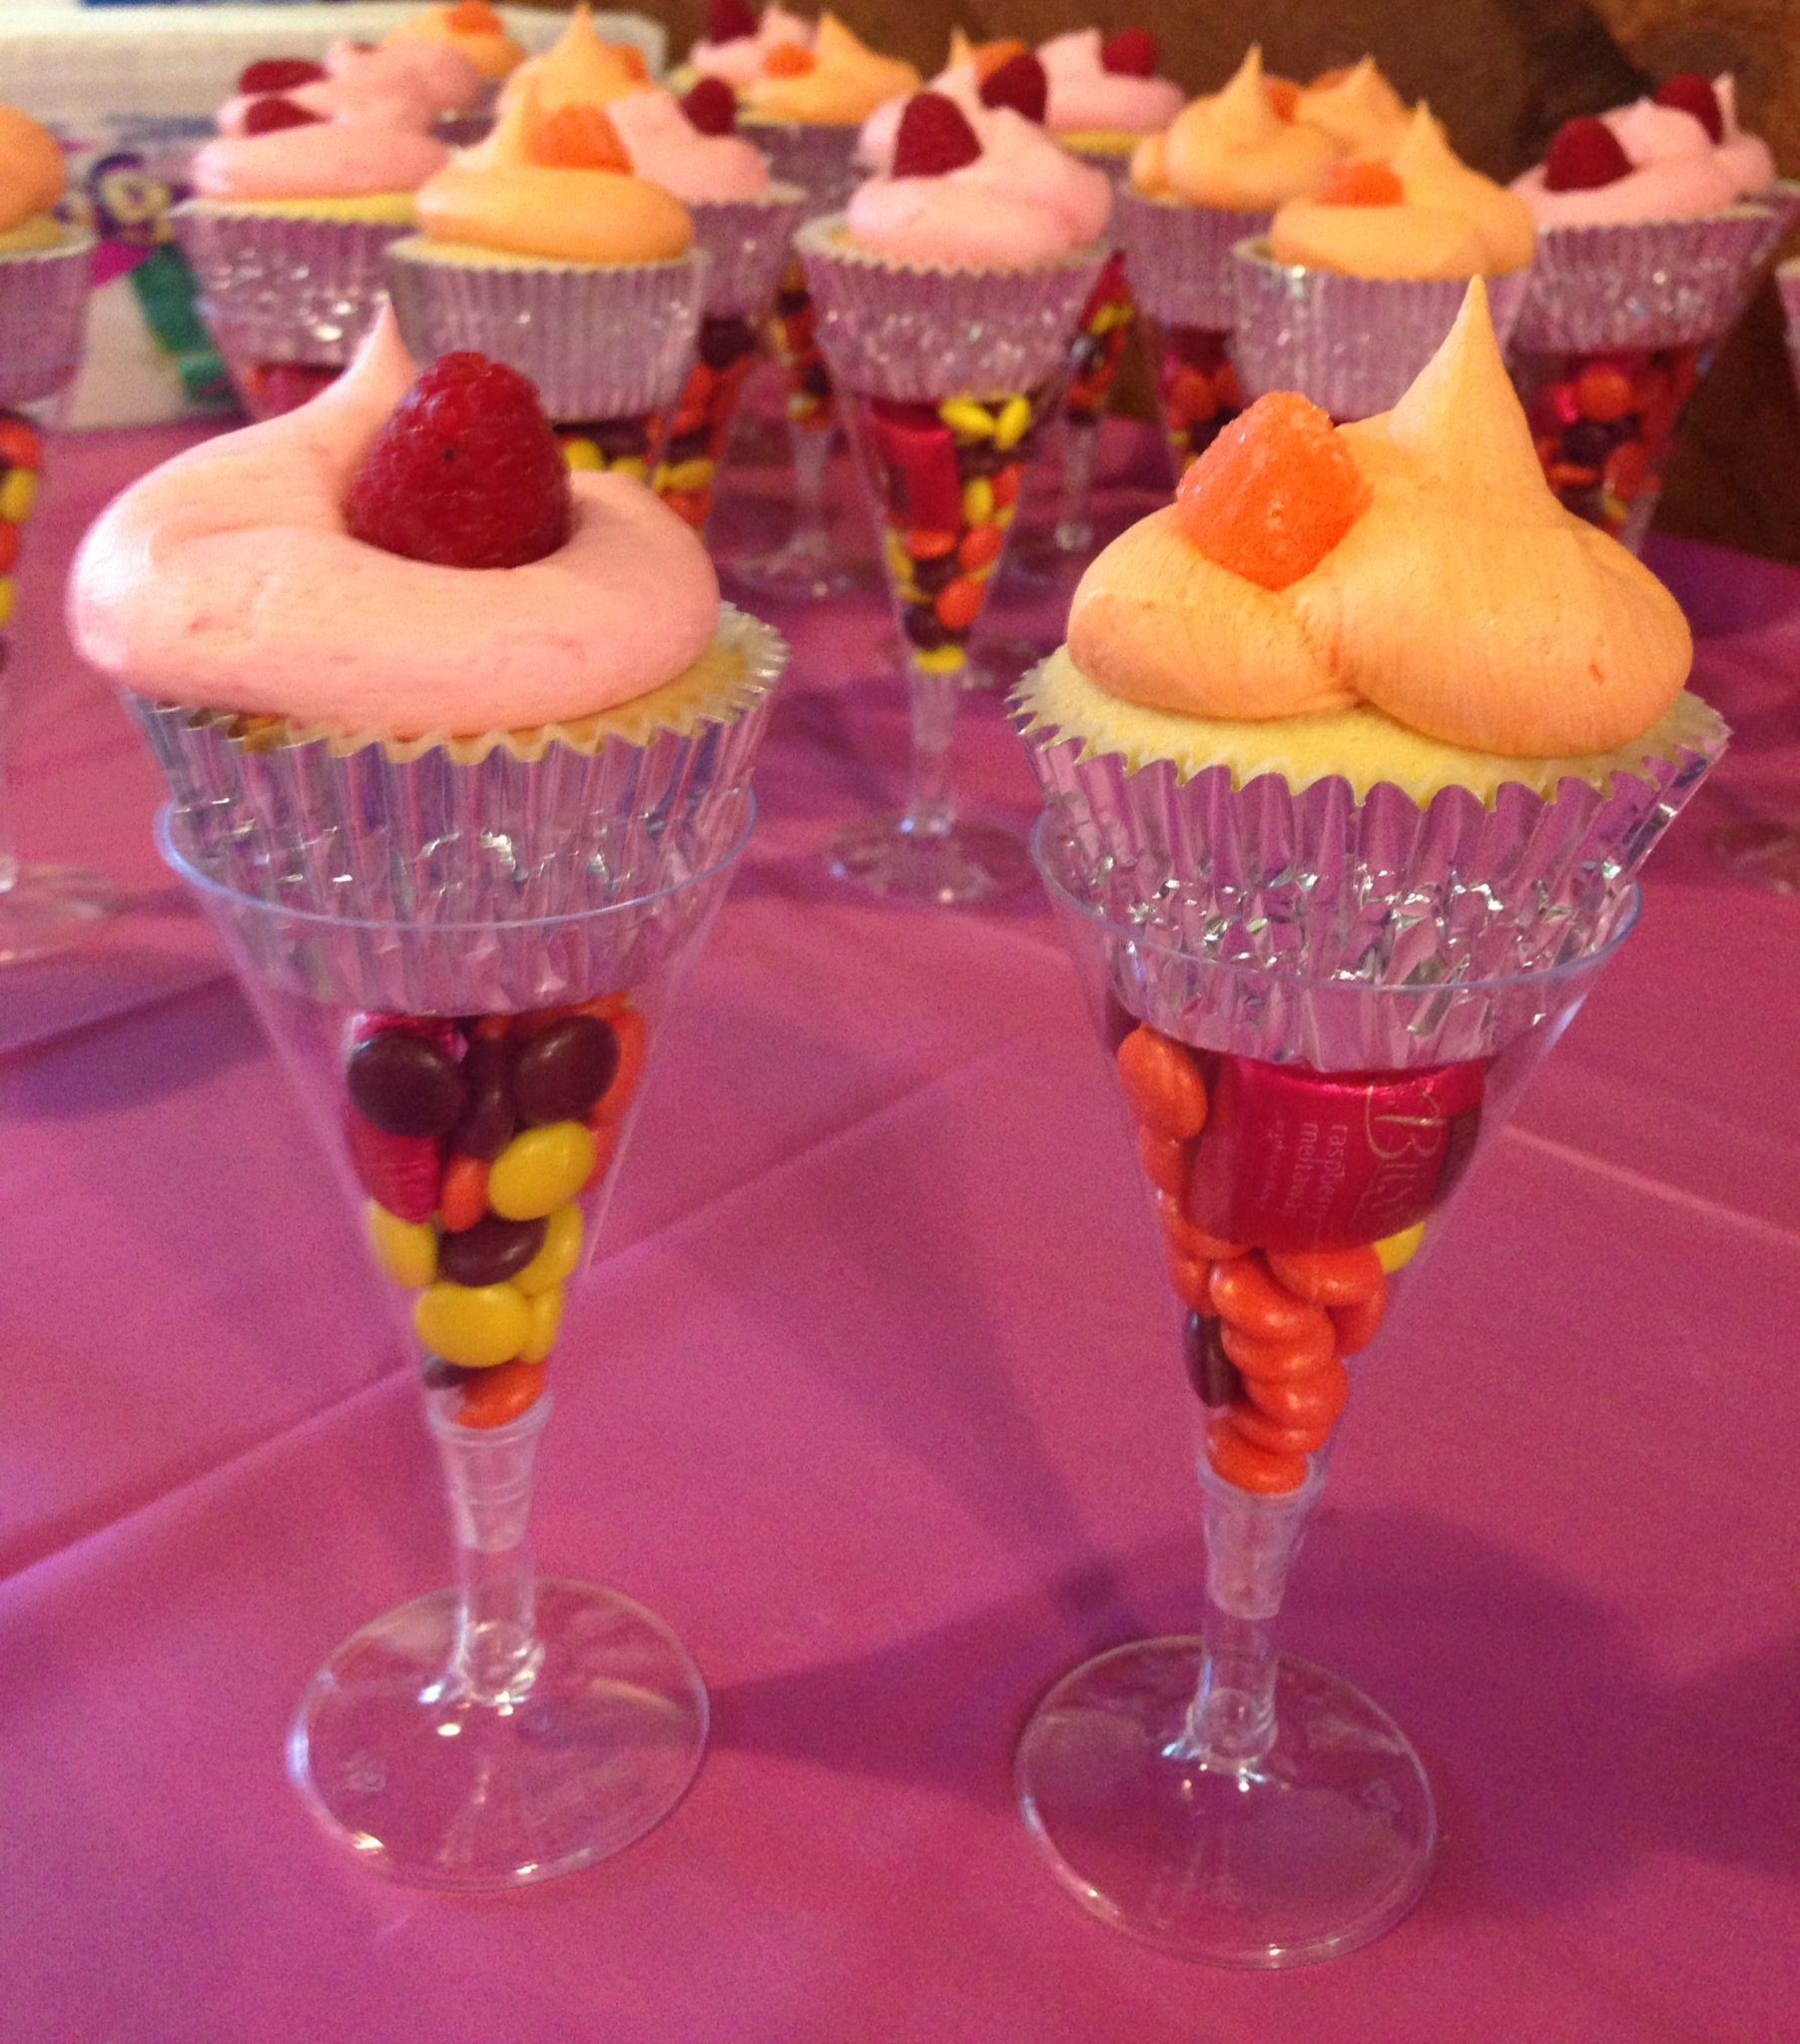 Champagne flute cupcakes for wedding shower. Cupcakes